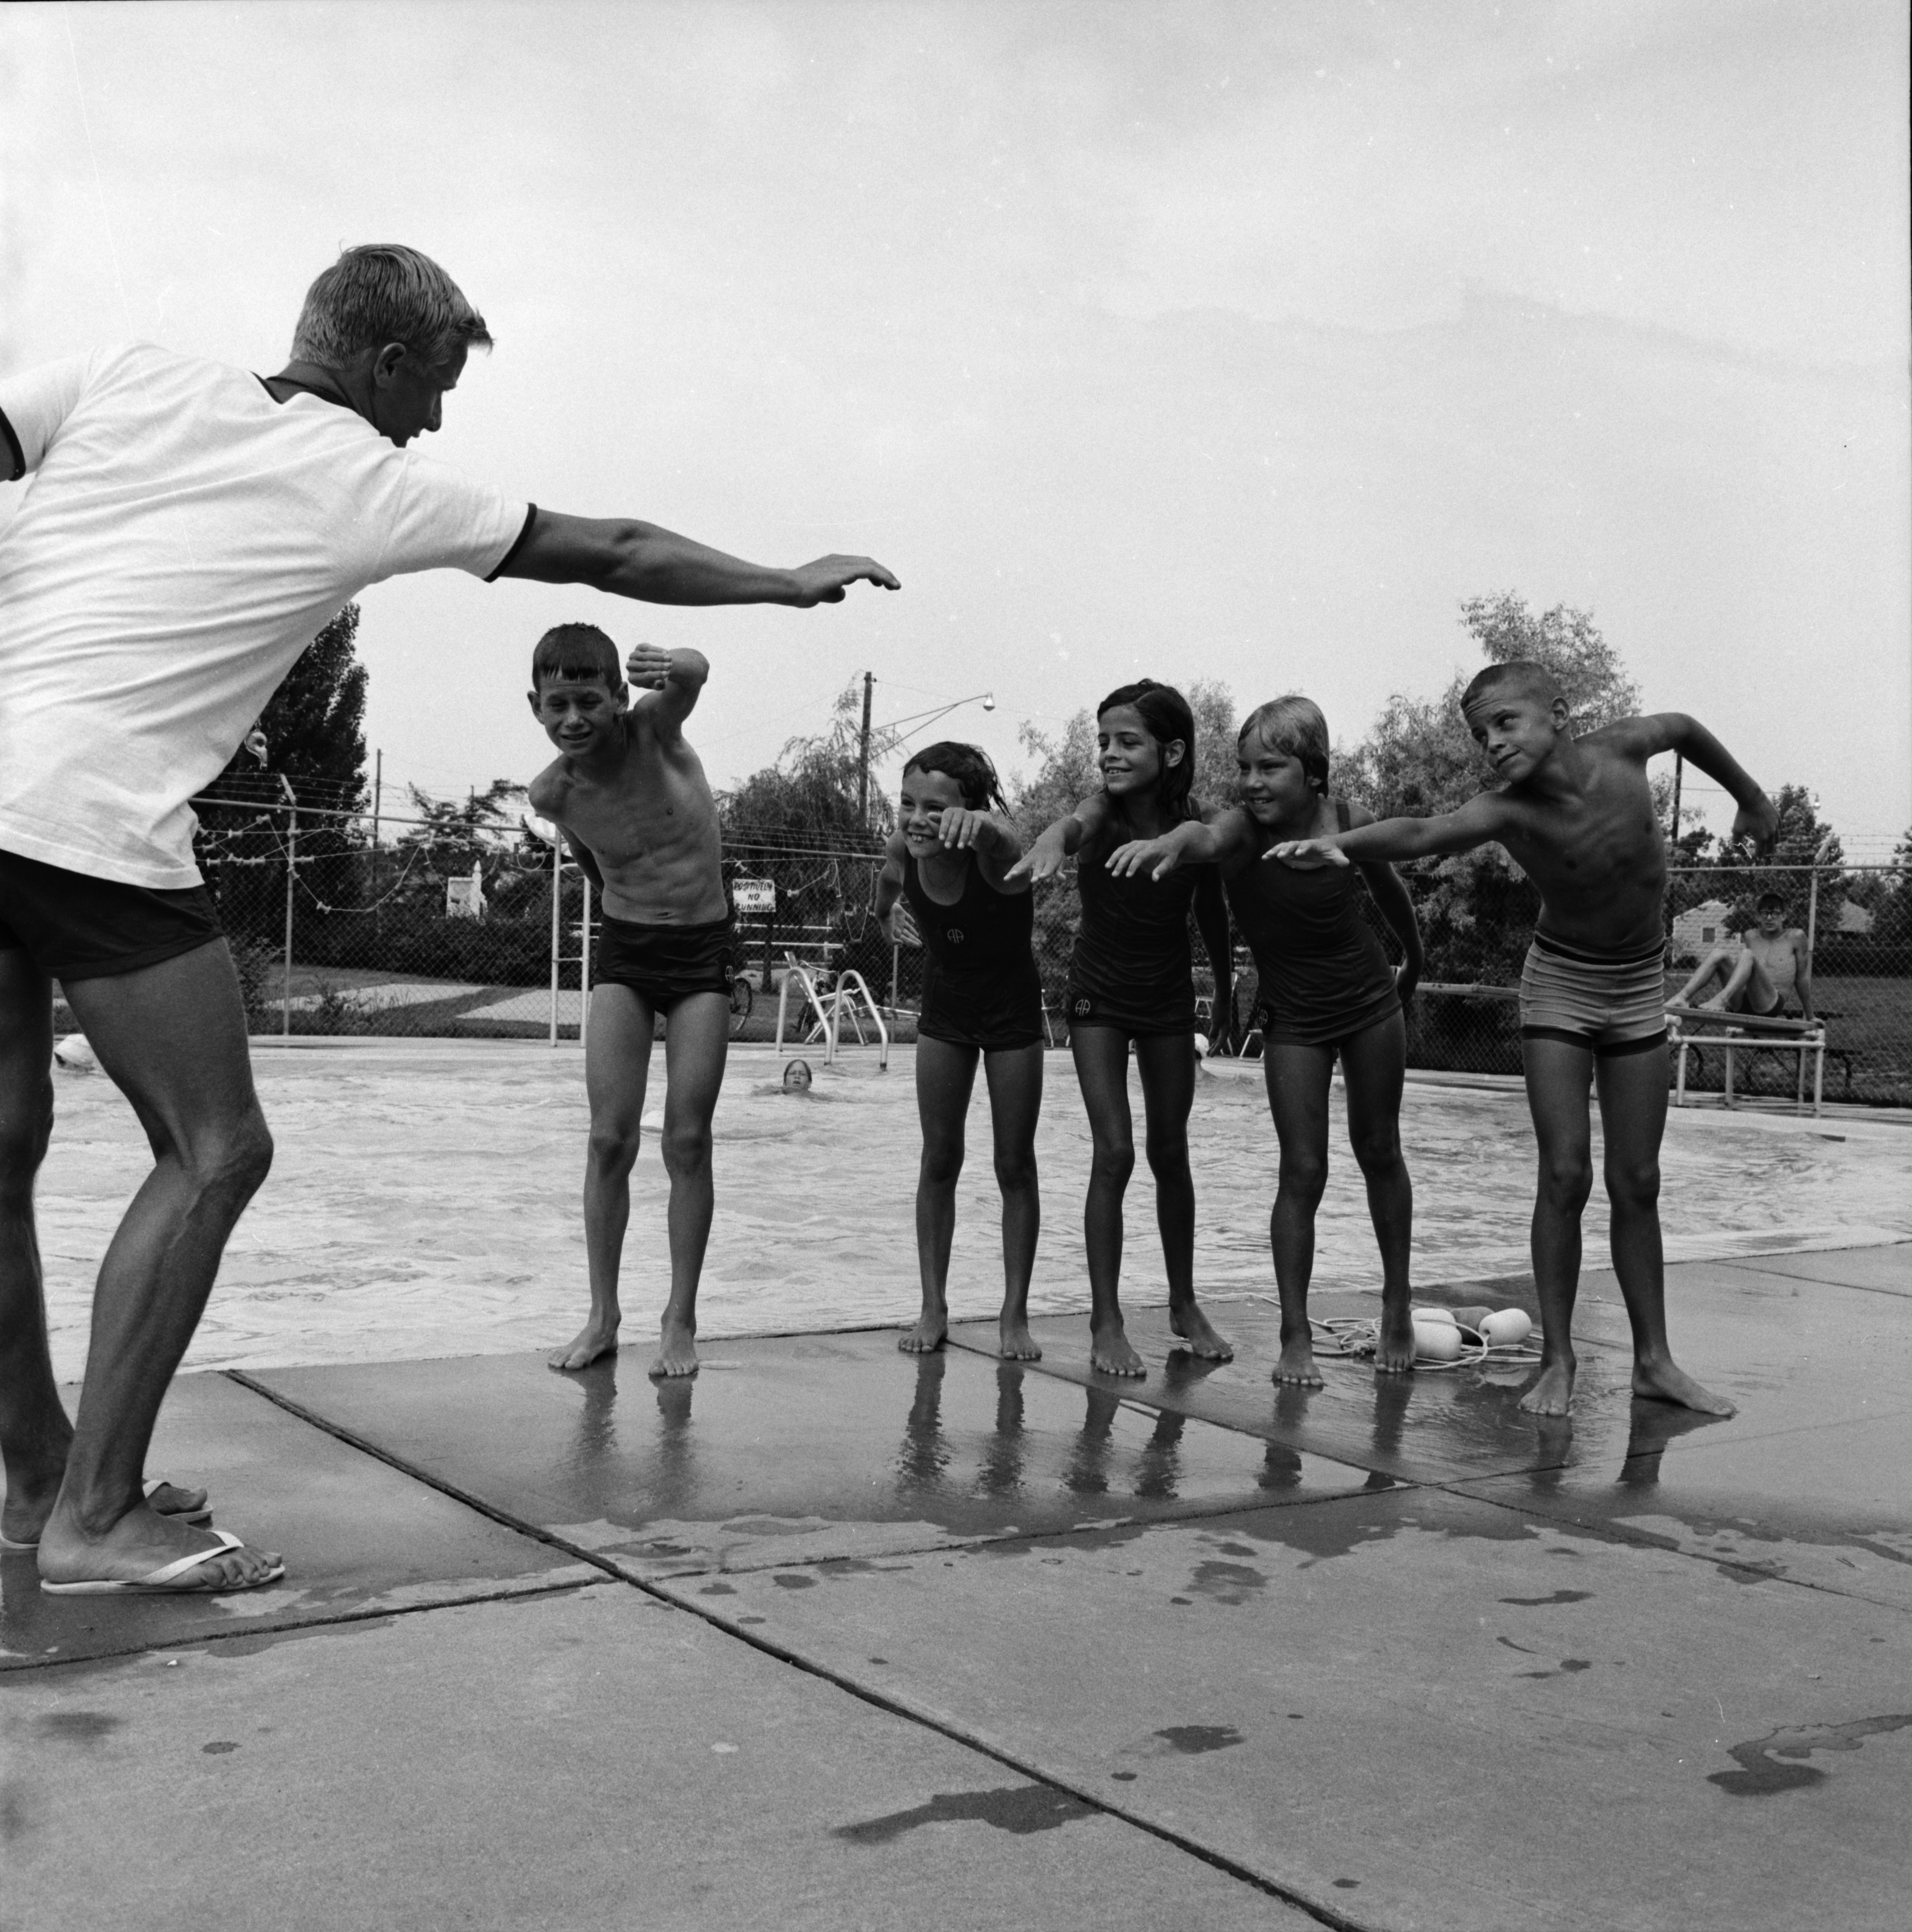 Swimming Lessons at Forestbrooke Athletic Club, June 1966 image